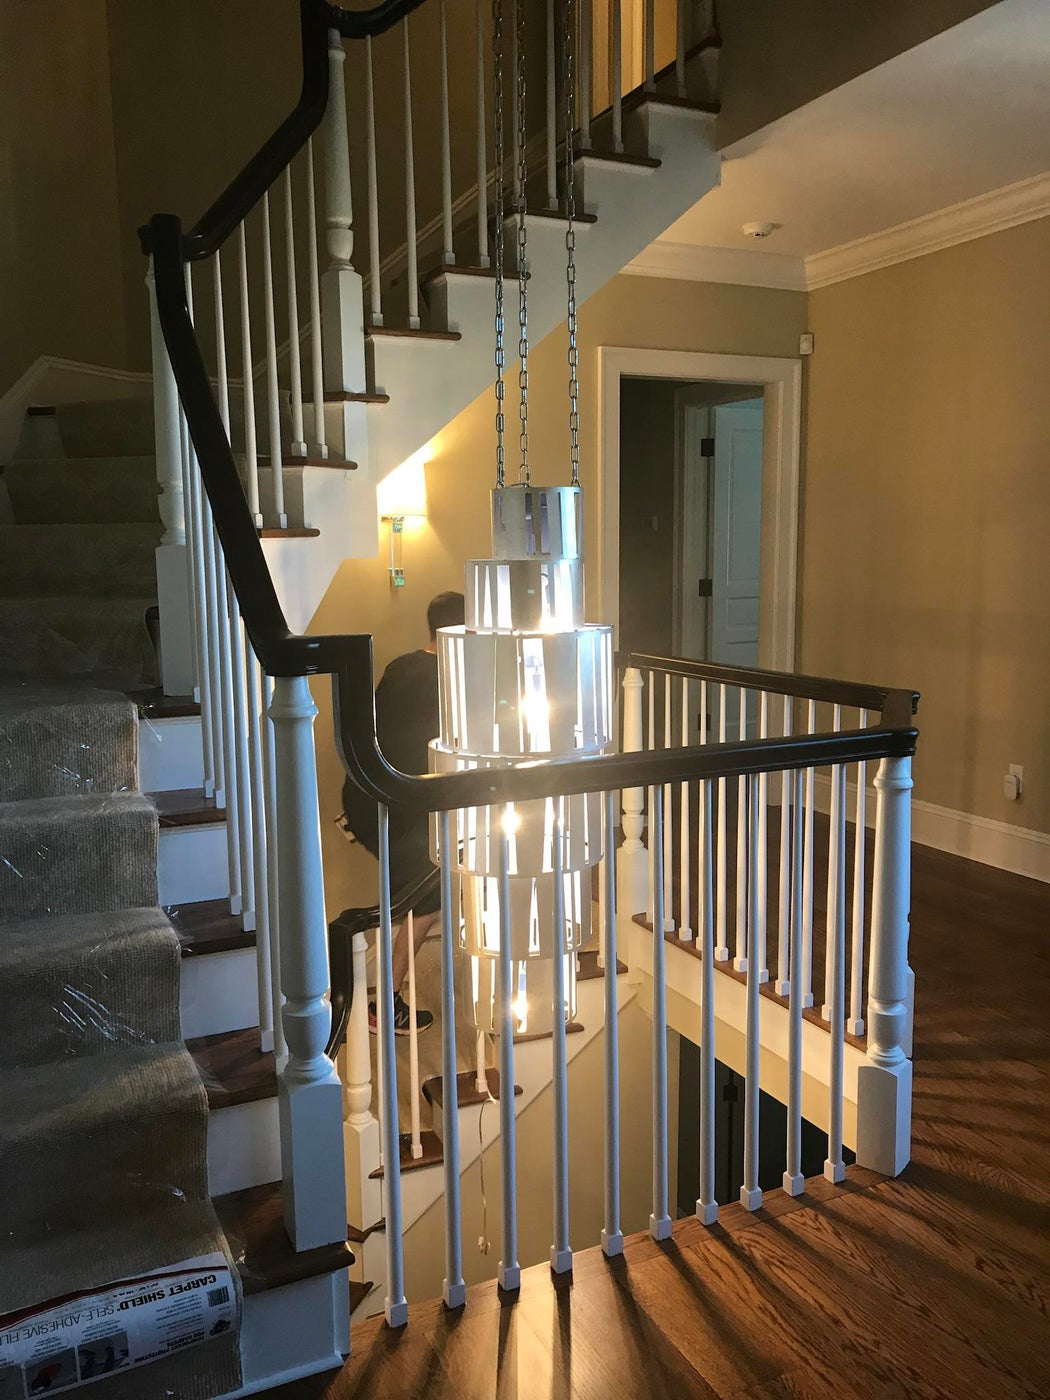 Staircase with hanging center pendant, traditional railings